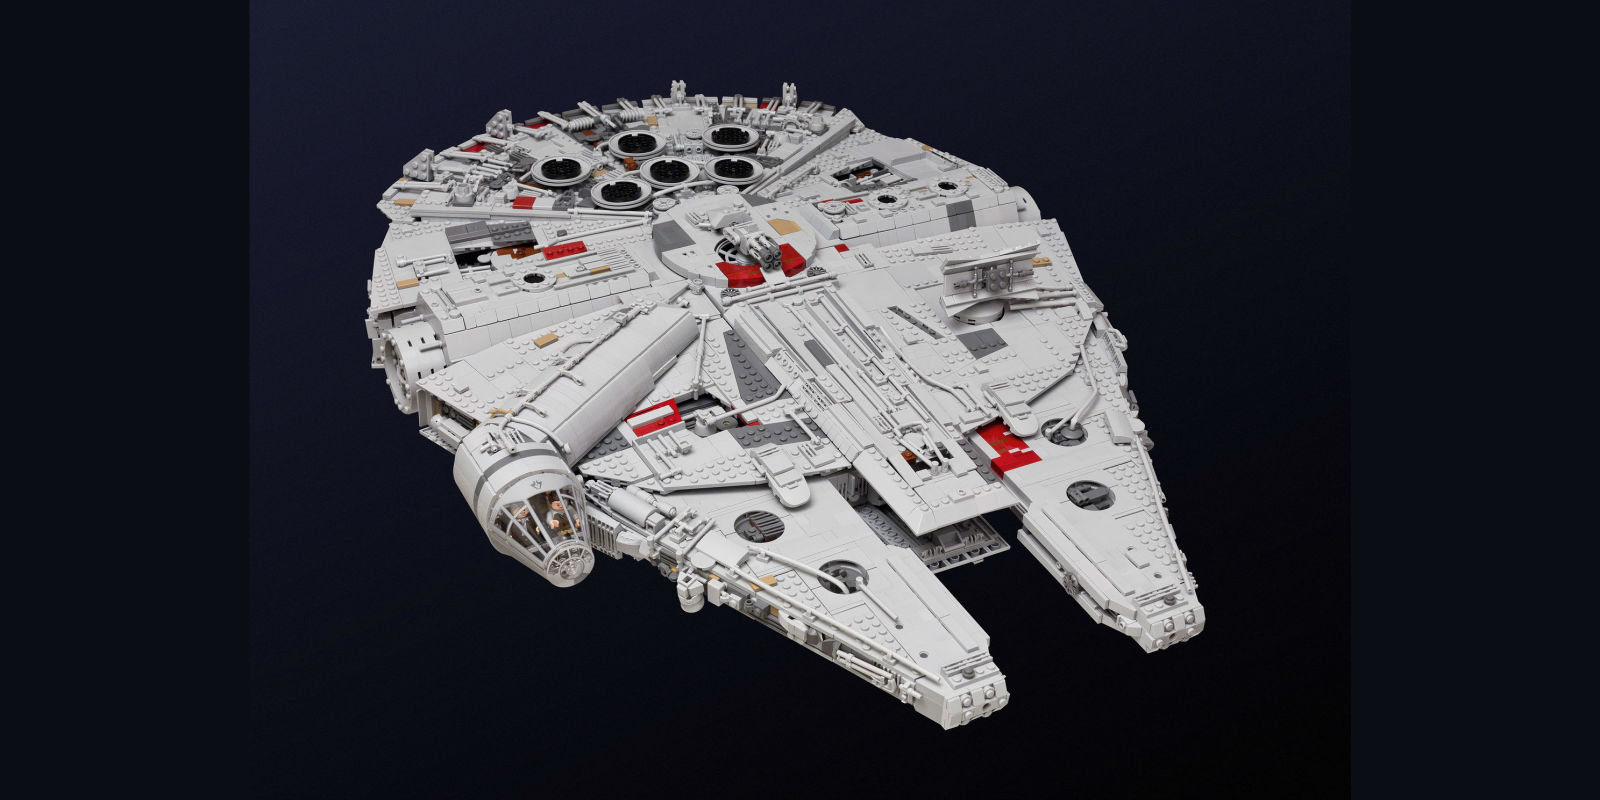 This Giant Lego Millennium Falcon Took A Year To Build